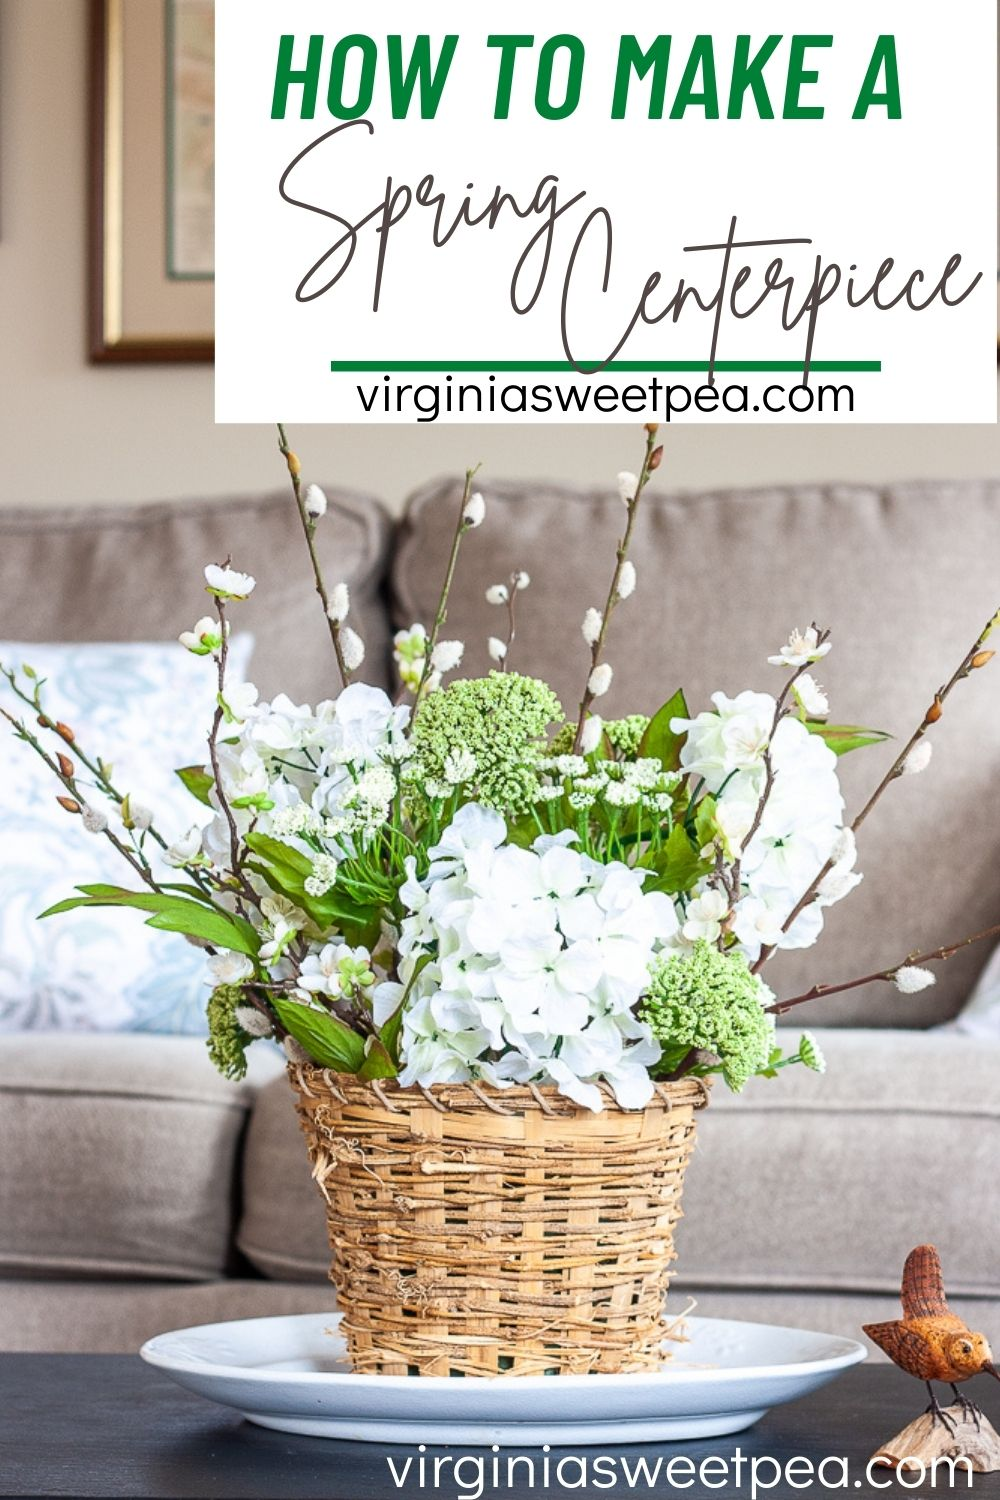 Learn how to make a spring centerpiece to use for spring decorating in your home.  This centerpiece can be used on a dining table, coffee table, console table, or any other spot in your home that needs a touch of spring.  Follow the step-by-step tutorial to create your own centerpiece to use for decorating your home for spring. via @spaula